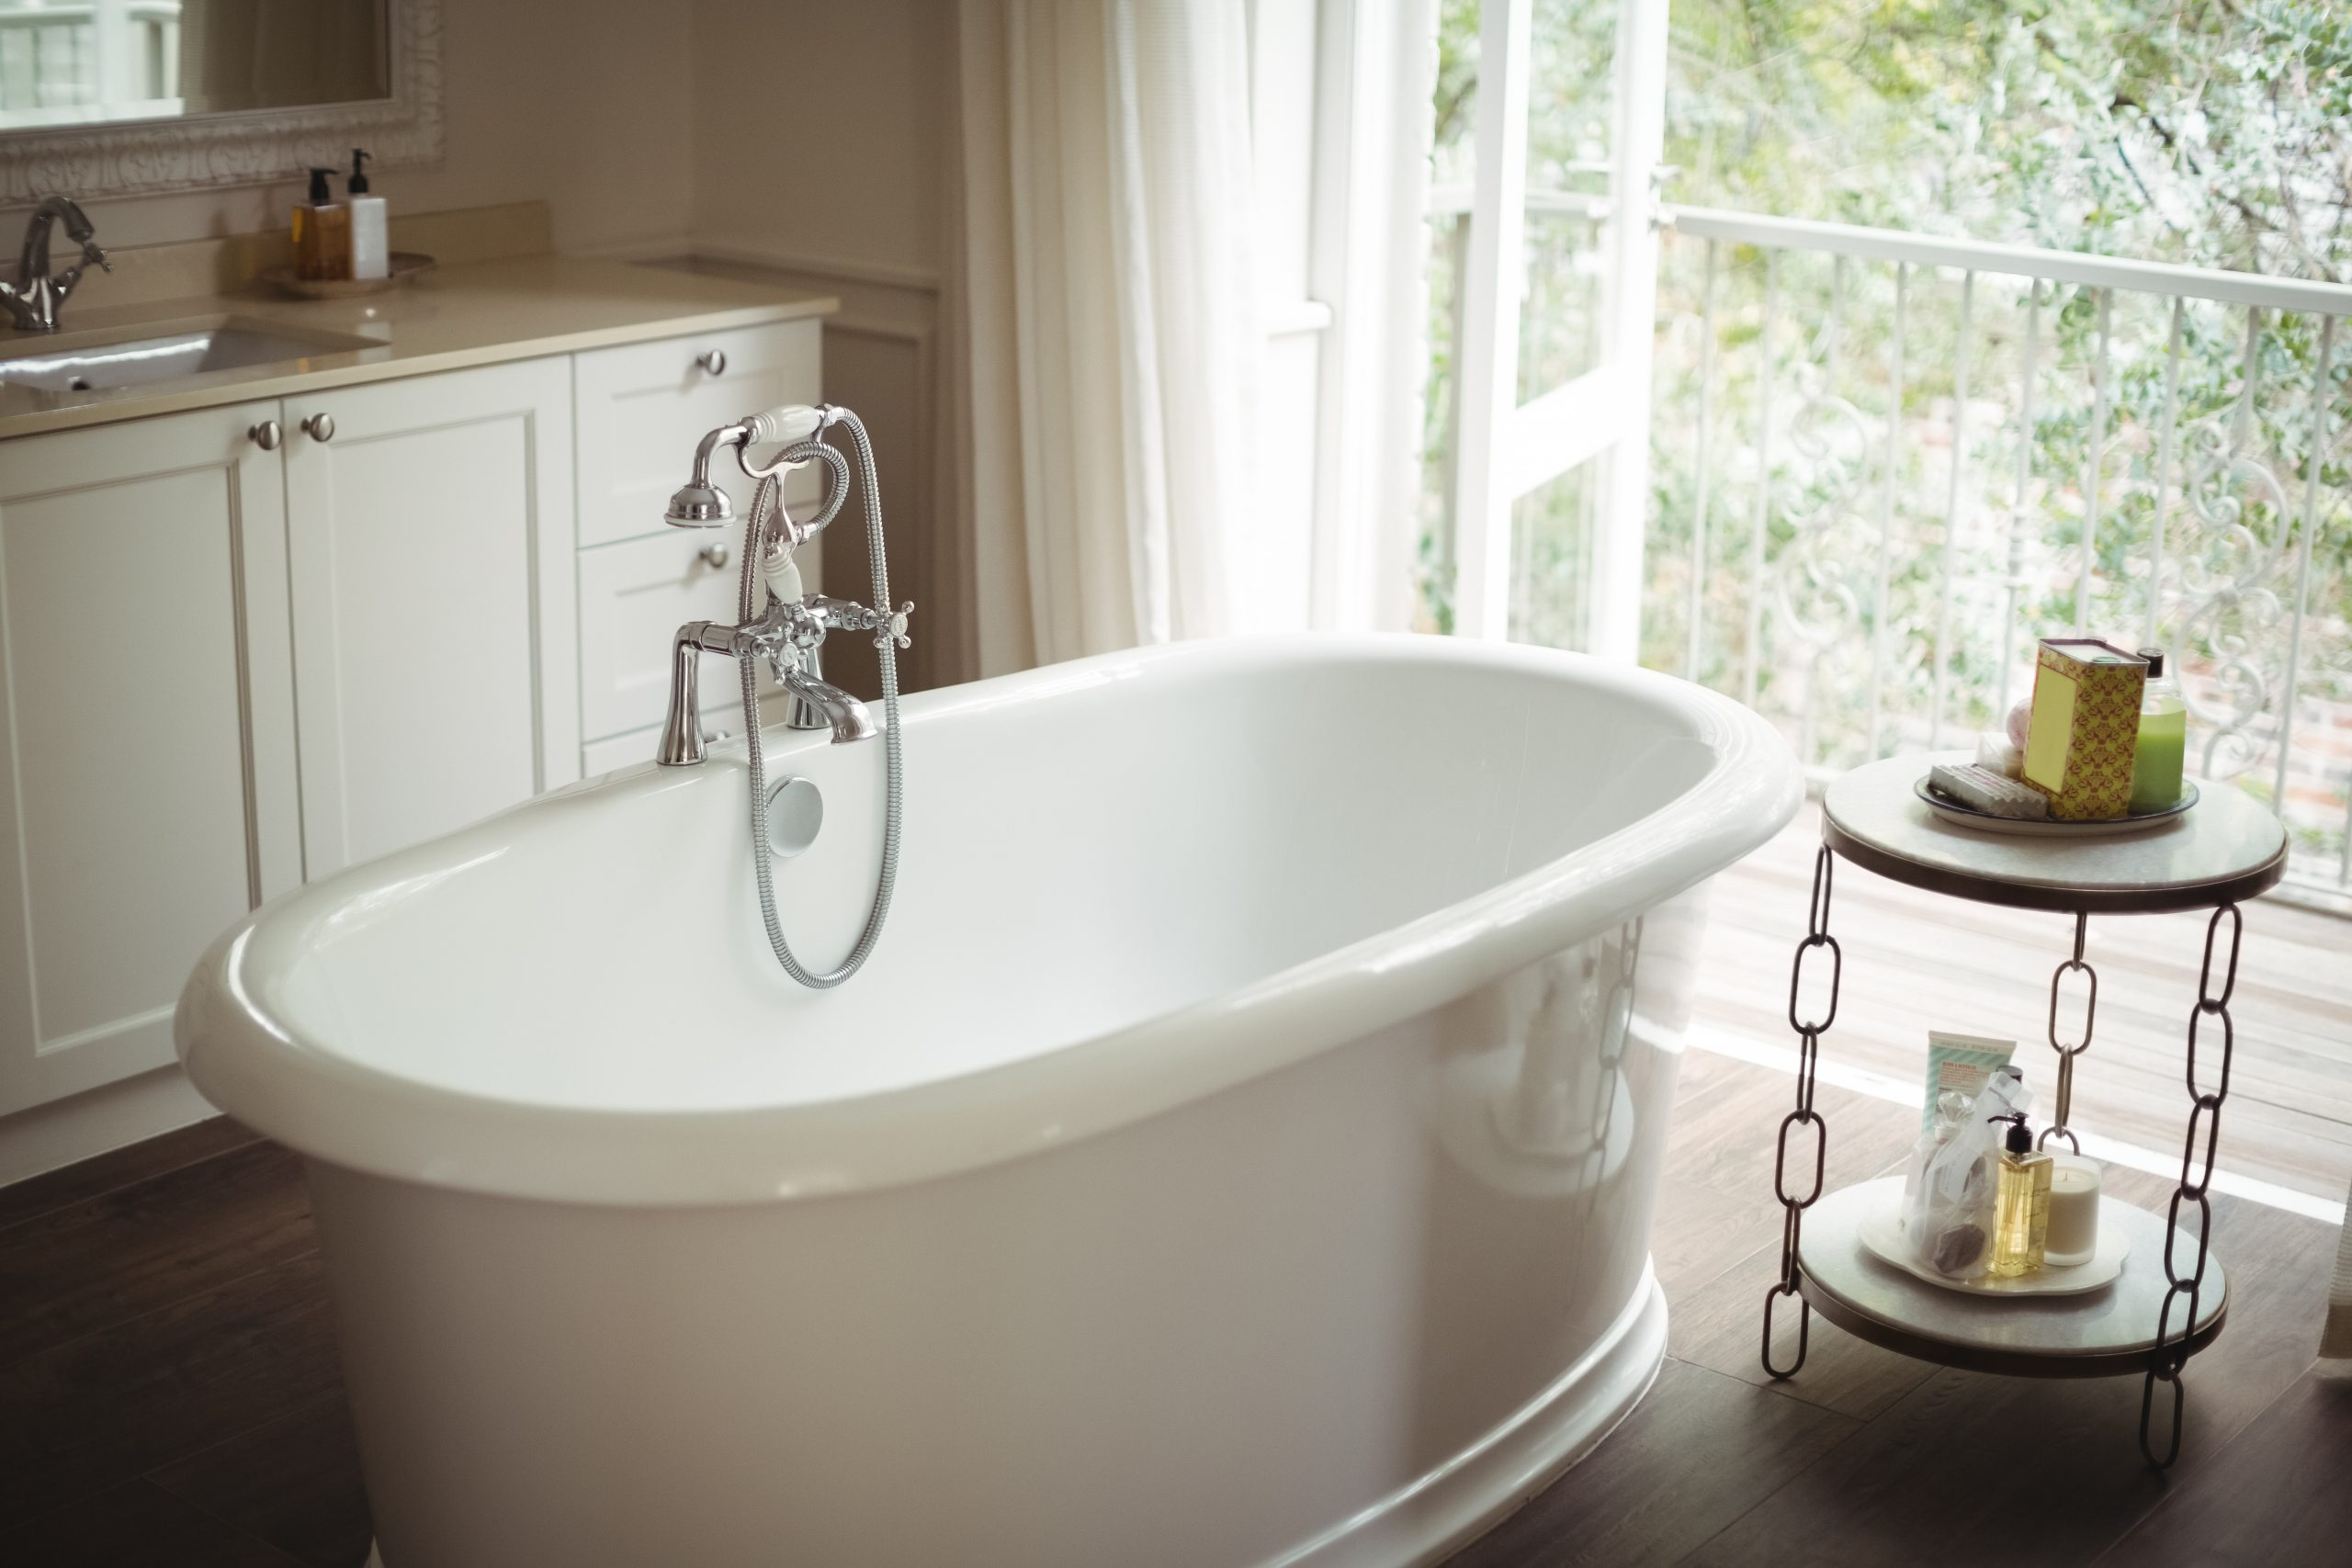 plumber Columbia SC plumber columbia sc Plumber Columbia SC | On Call Plumbing Heating & Air view of empty bathtub in bathroom HLD3VJY scaled